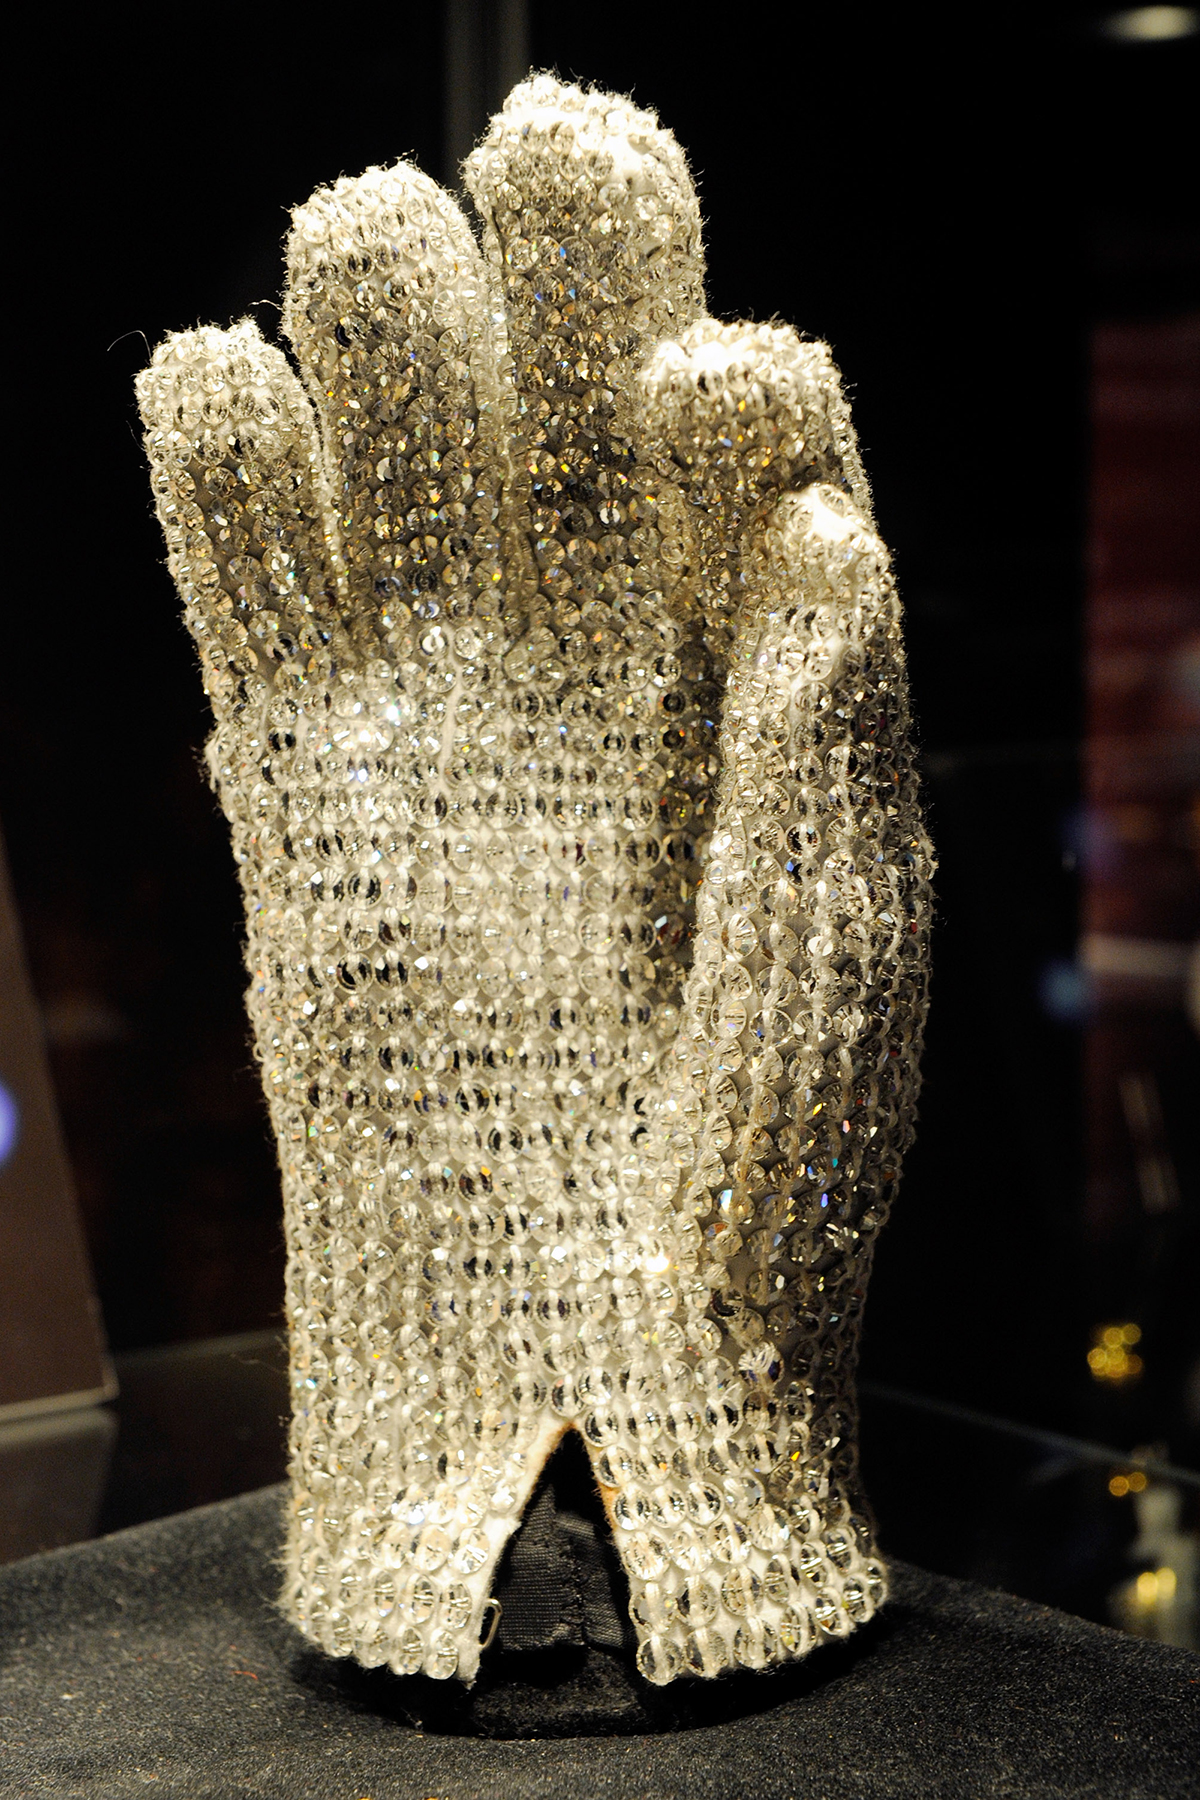 LAS VEGAS - JUNE 24: A Michael Jackson Victory Tour glove covered in clear Swarovski crystals is displayed at Julien's Auctions annual summer sale at the Planet Hollywood Resort & Casino June 24, 2010 in Las Vegas, Nevada. The auction, which continues through Sunday, features 1,600 items from entertainers including Michael Jackson, Anna Nicole Smith, Star Trek creator Gene Roddenberry, Marilyn Monroe, Cher and Elvis Presley. (Photo by Ethan Miller/Getty Images)